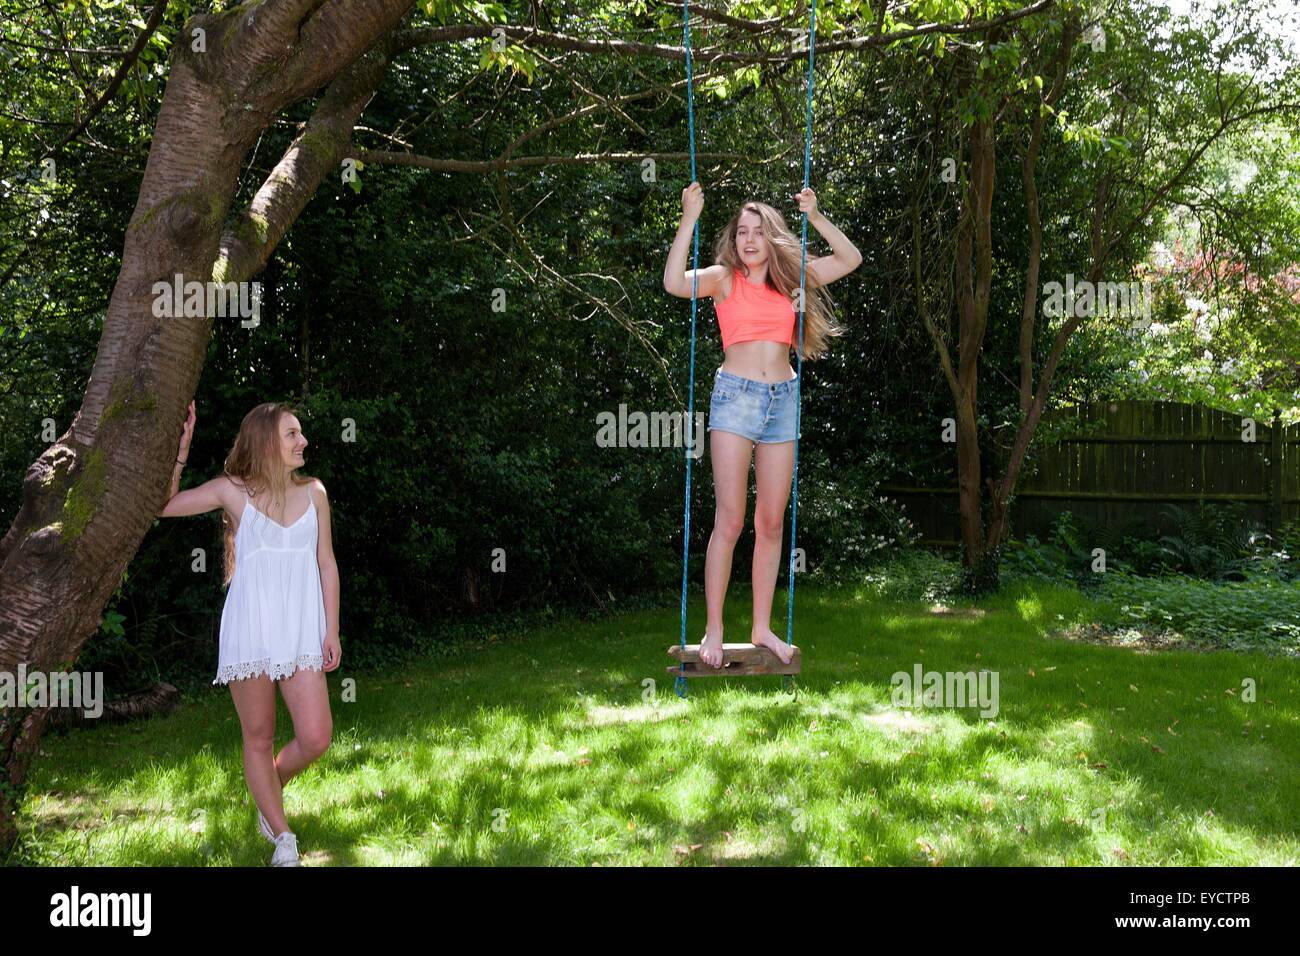 Teenage girl swinging on tree swing, while friend watches on - Stock Image